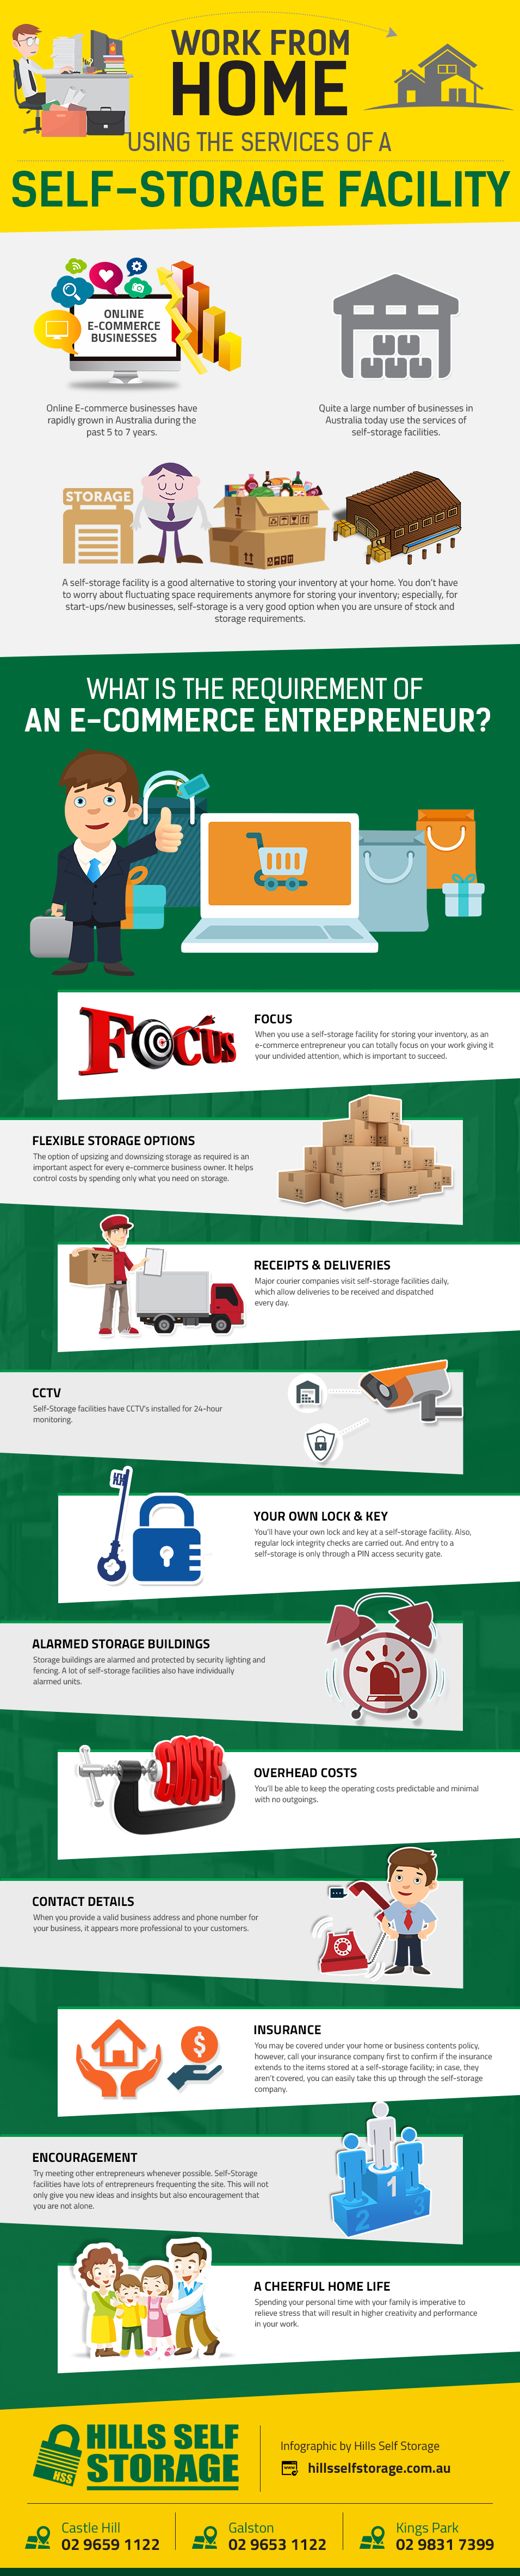 Work from Home Using the Services of a Self Storage Facility